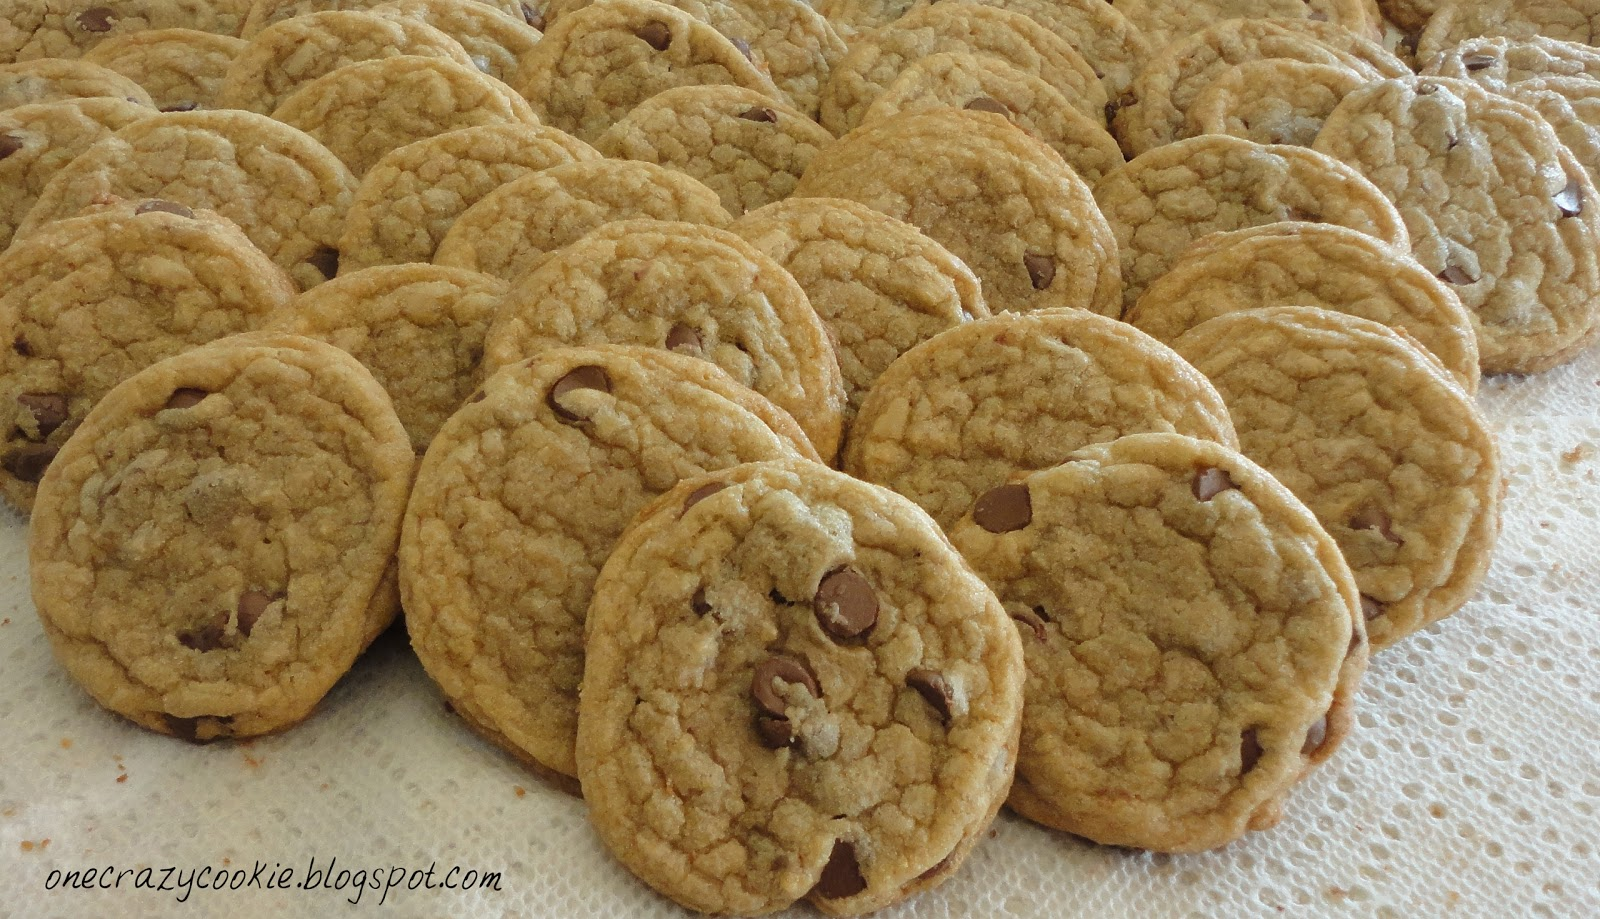 One Crazy Cookie: Bakery Style Chewy Chocolate Chip Cookies